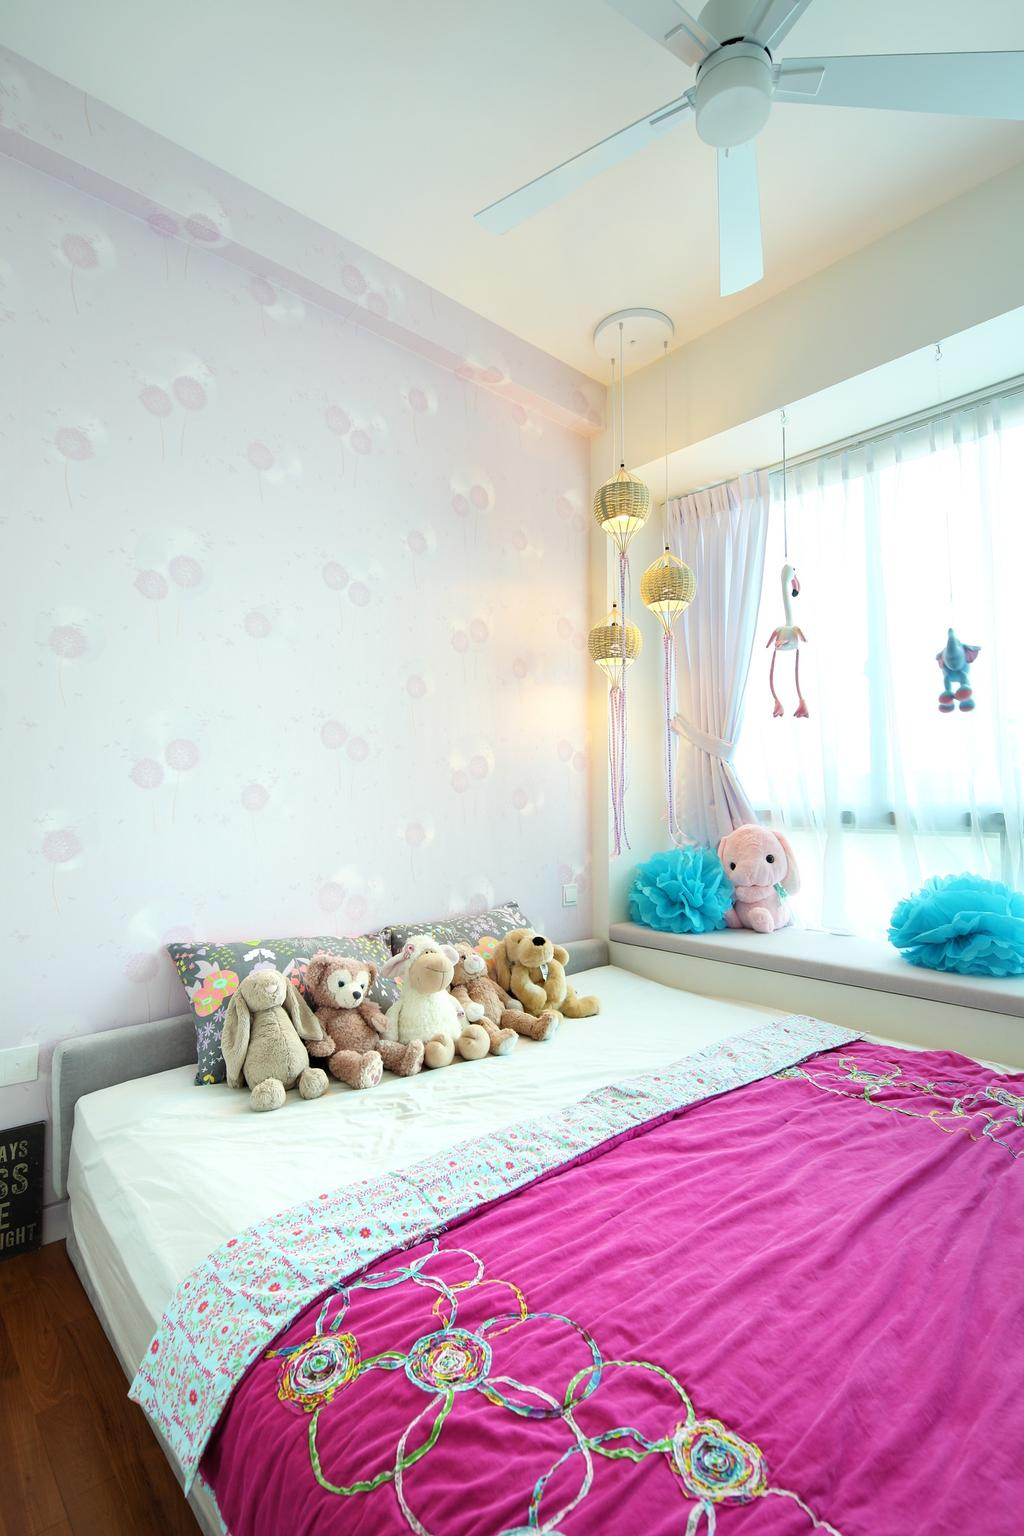 Contemporary, Condo, Bedroom, 56 St Patrick Road, Interior Designer, Space Define Interior, Wallpaper, Pink, Kids, Kids Room, Window Seat, Floral Wallpaper, Nature Wallpaper, Floral, Nature, Curtains, Pendant Light, Hanging Light, Lighting, Ceiling Fan, Teddy Bear, Toy, Indoors, Nursery, Room